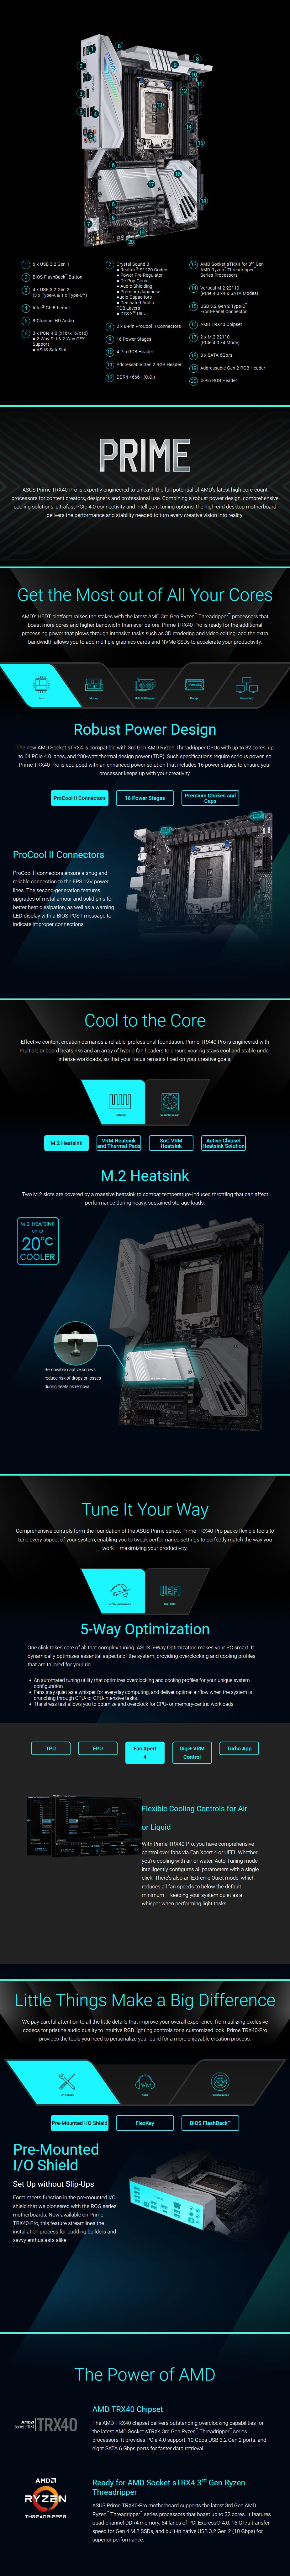 ASUS Prime TRX40 Pro sTRX4 ATX Motherboard - Overview 1